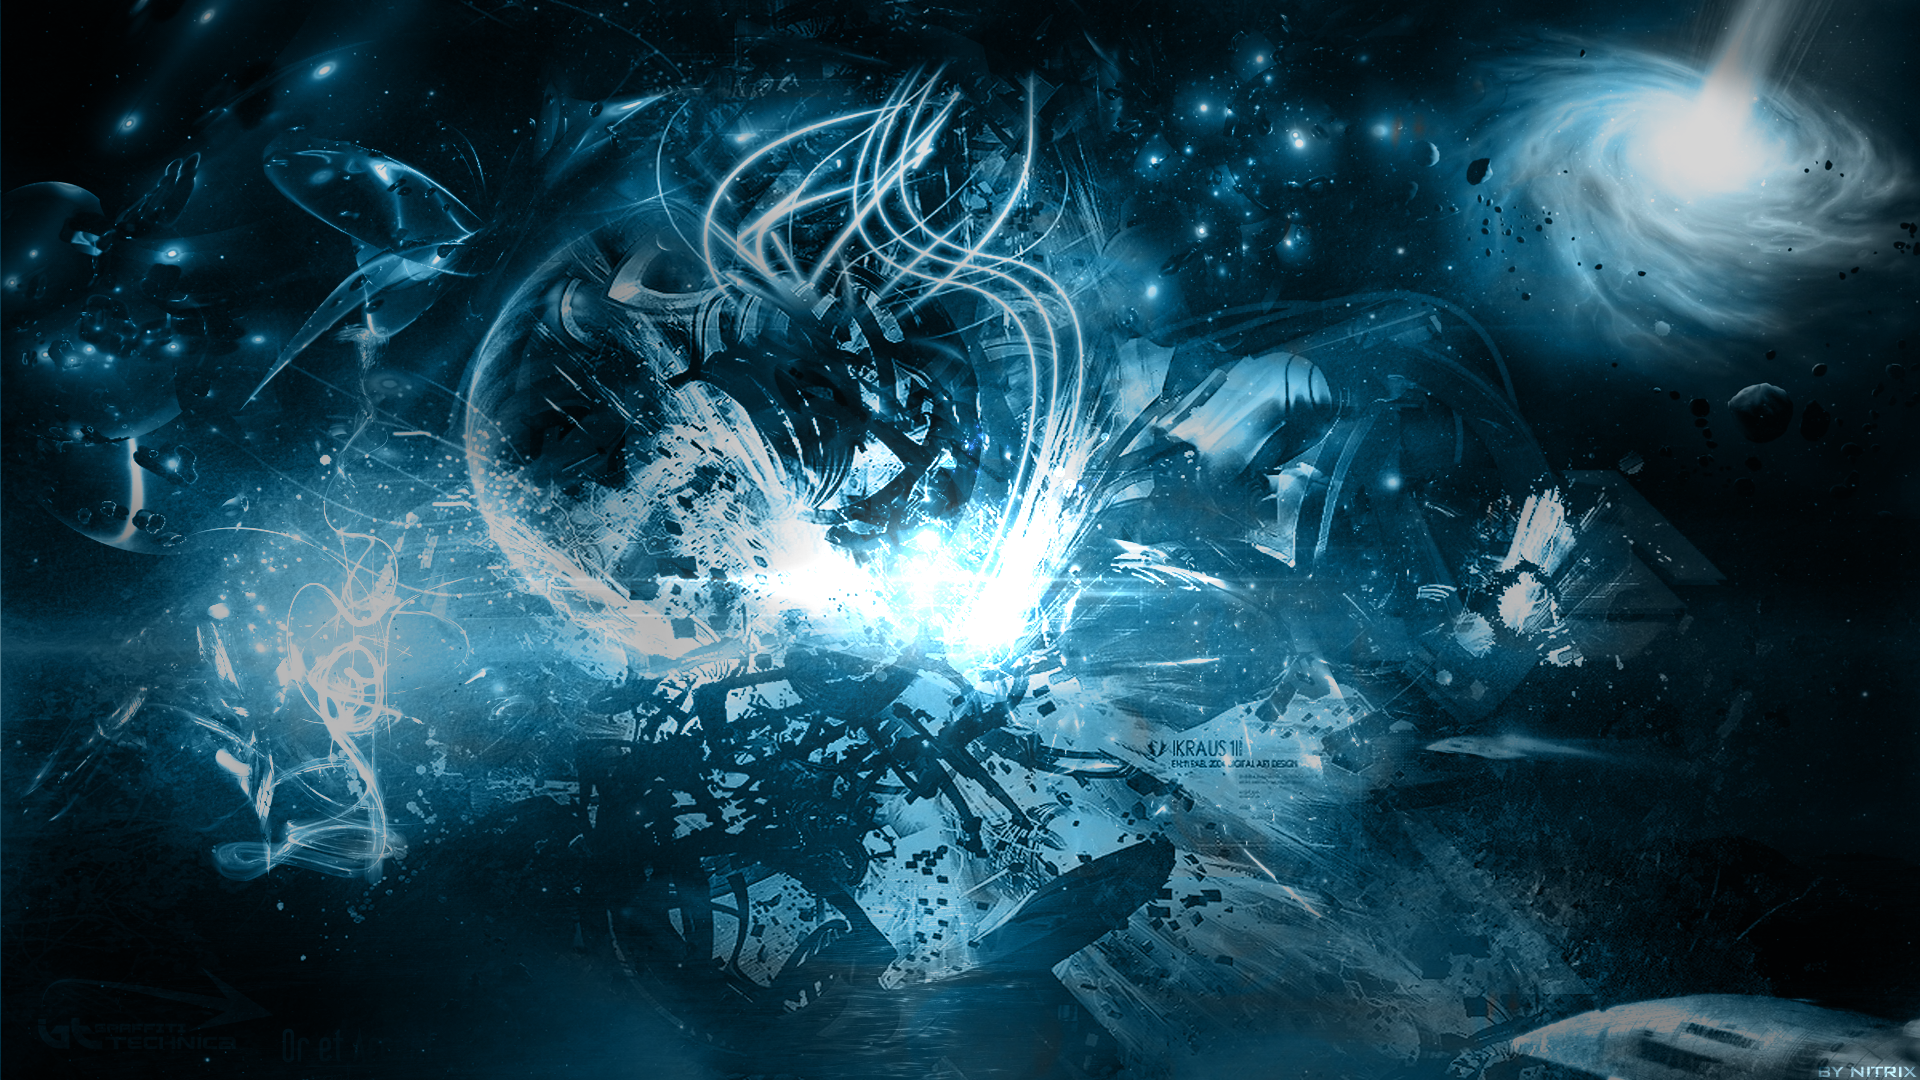 space abstract wallpaper 2 by nitr1x on deviantart